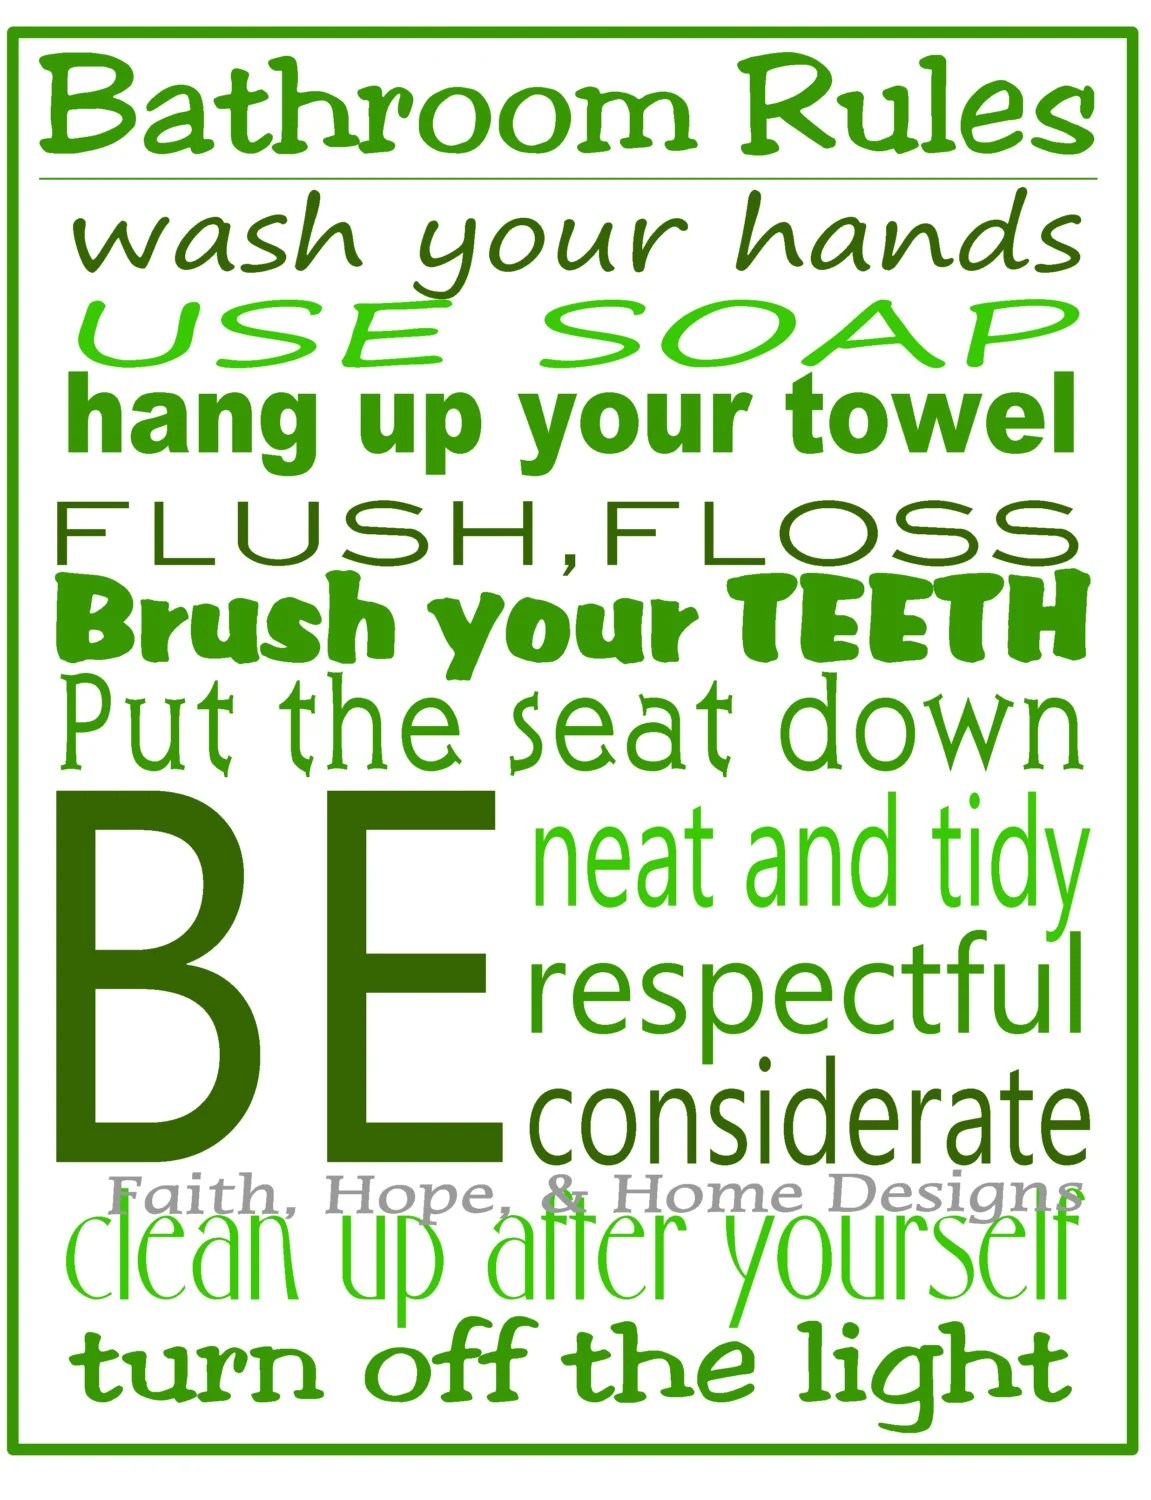 green bathroom rules wall art poster 8x10 digital art download